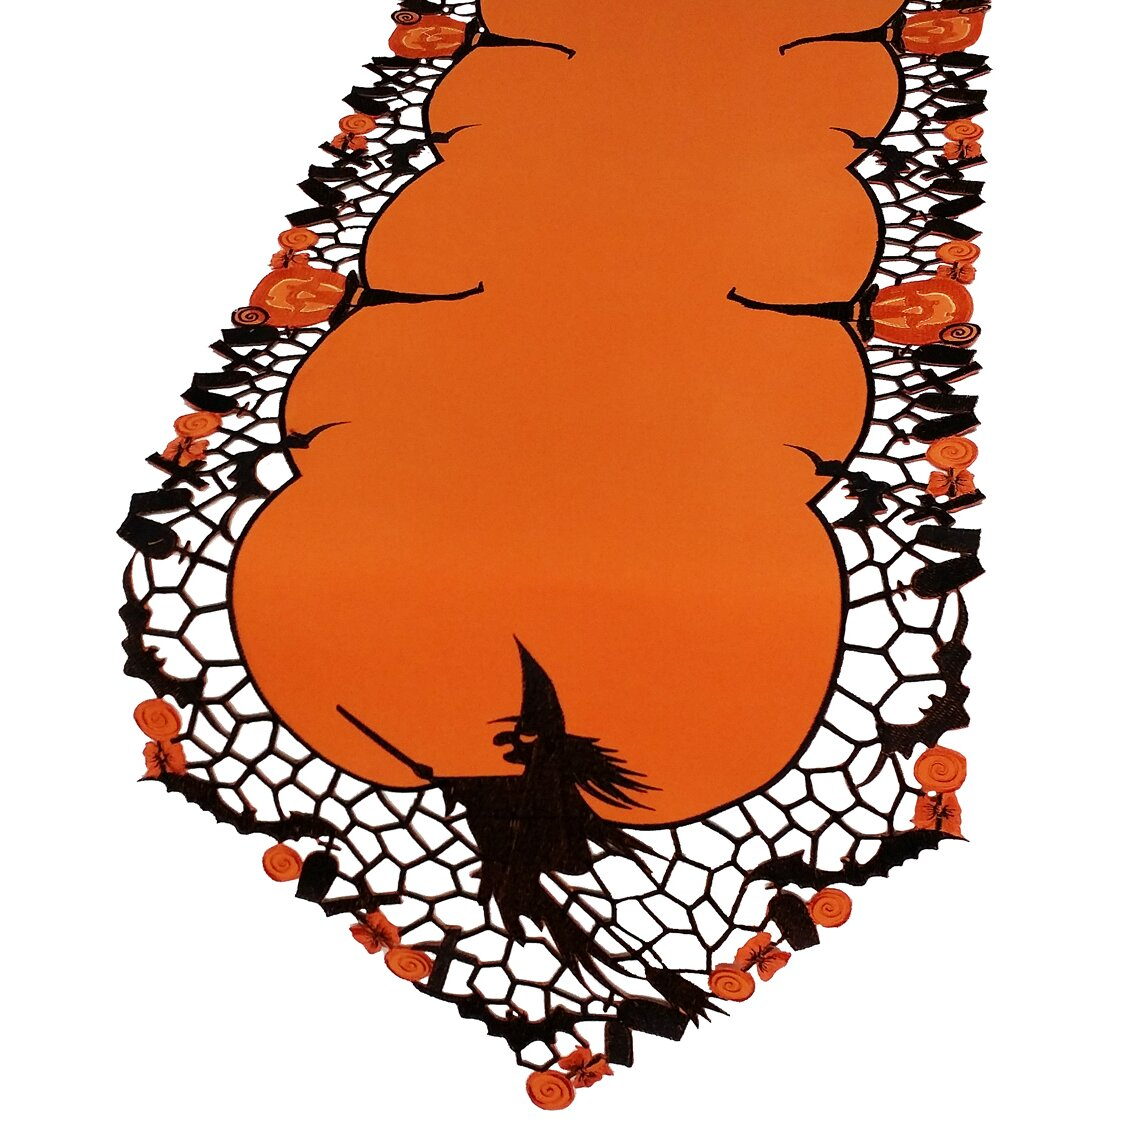 Xia Home Fashions Witch Embroidered Cutwork Halloween  : Witch Embroidered Cutwork Halloween Table Runner XD110131 from www.wayfair.com size 1121 x 1121 jpeg 266kB